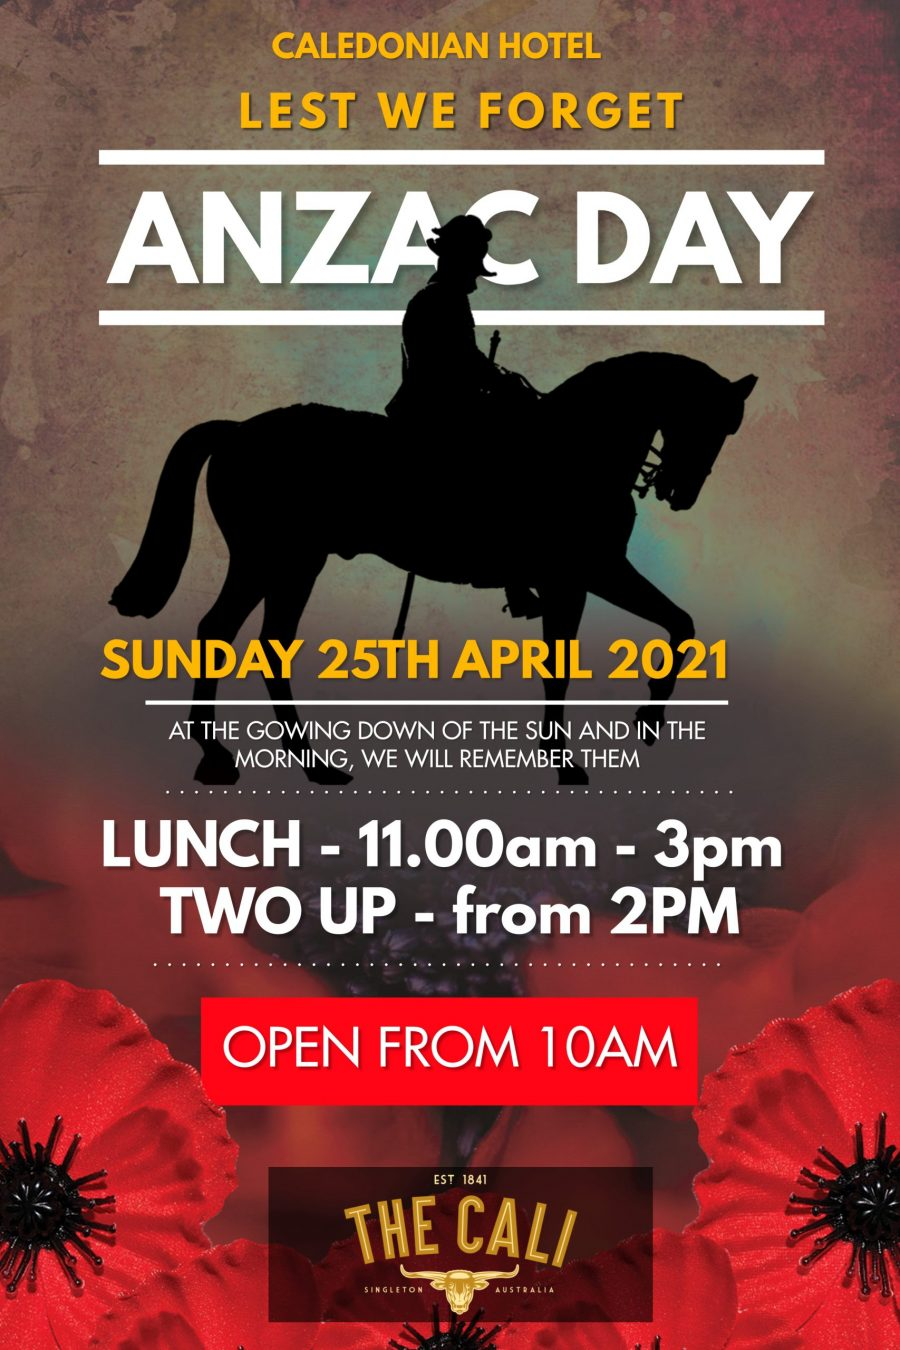 Cali Hotel - Singleton Pub Anzac Day Remembrance Flyer Lunch Two Up 2